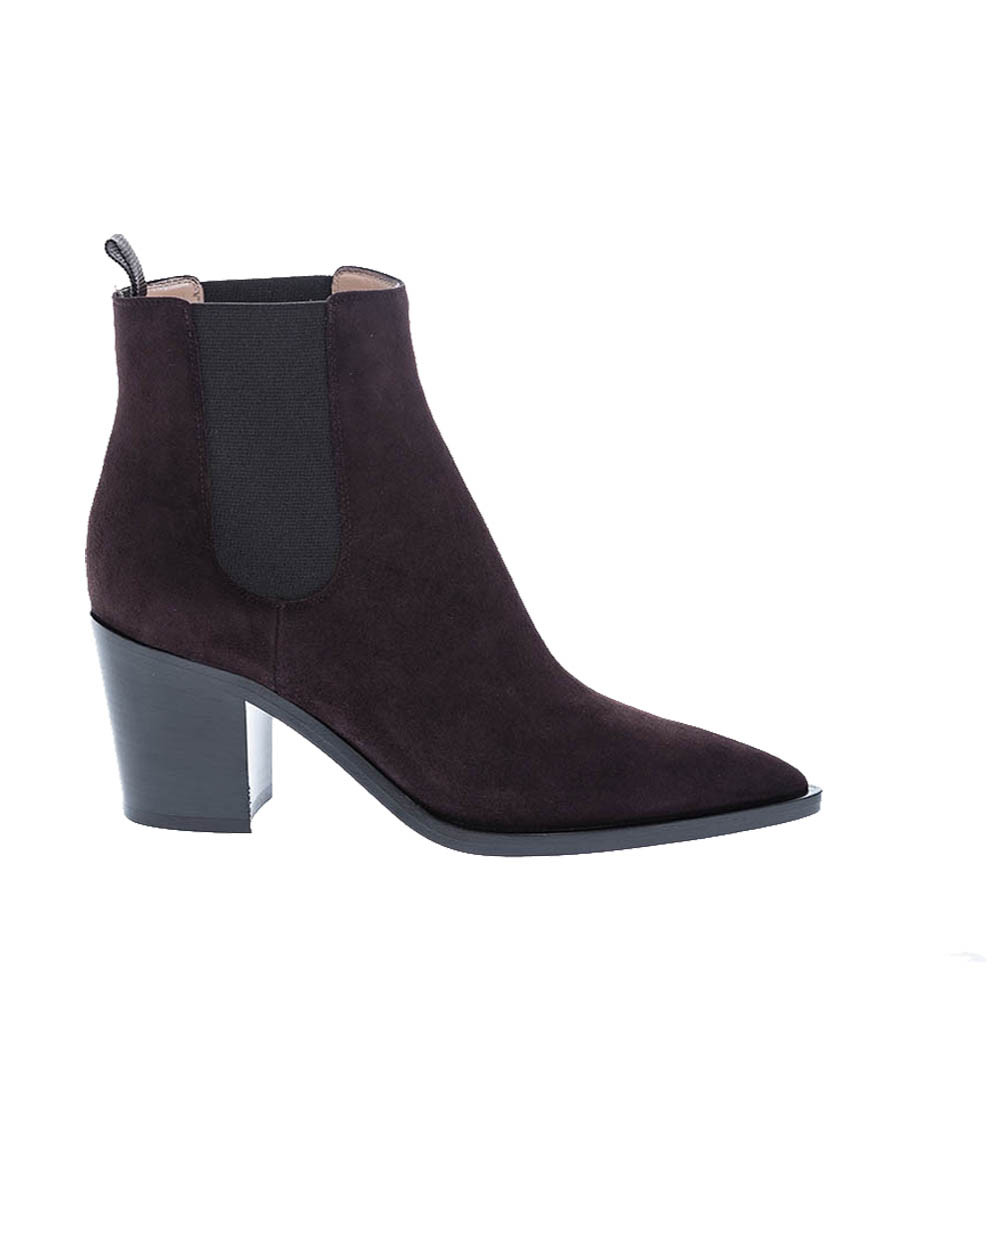 Suede boots Texan style 70